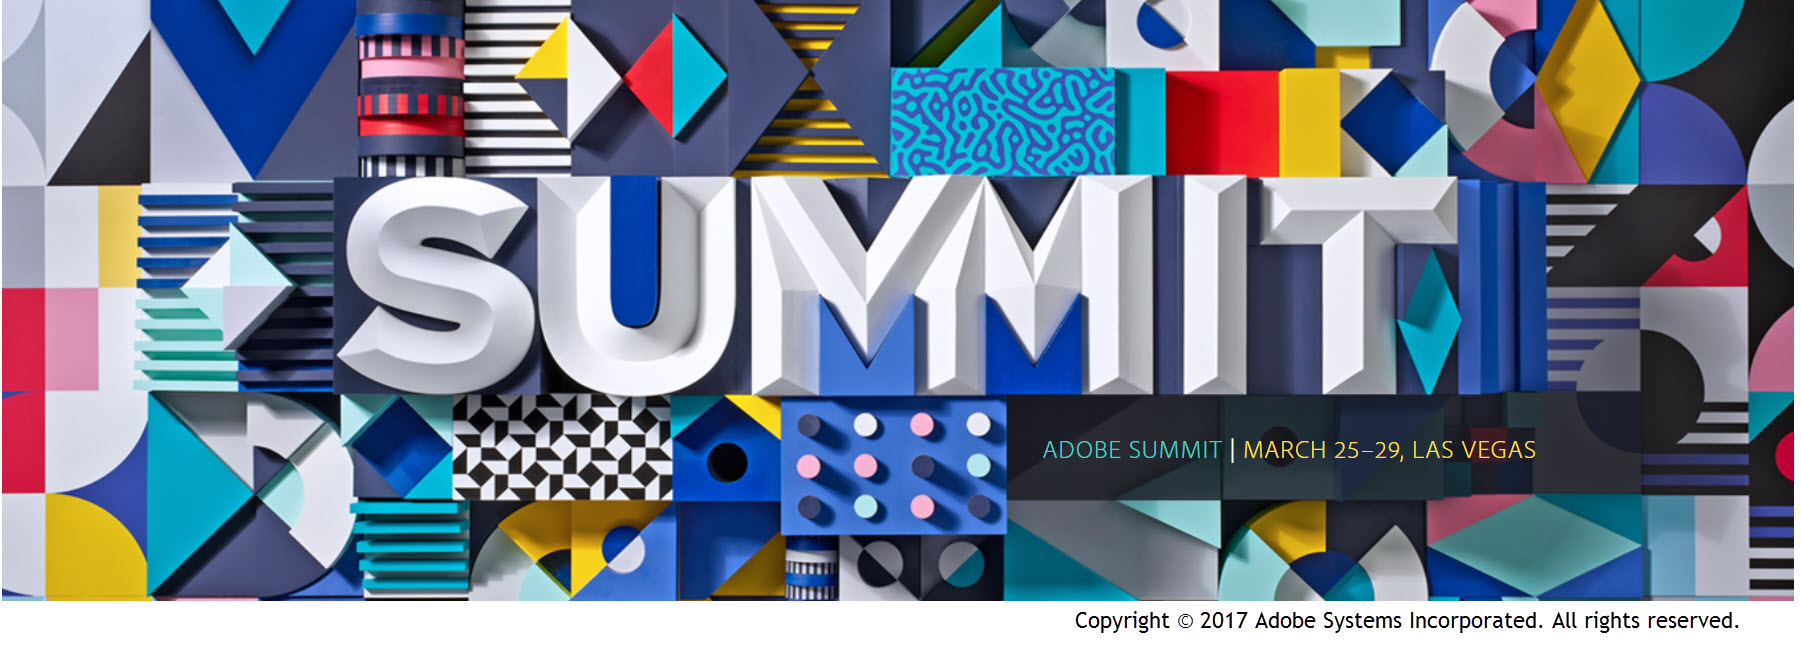 Adobe Summit Las Vegas 2018